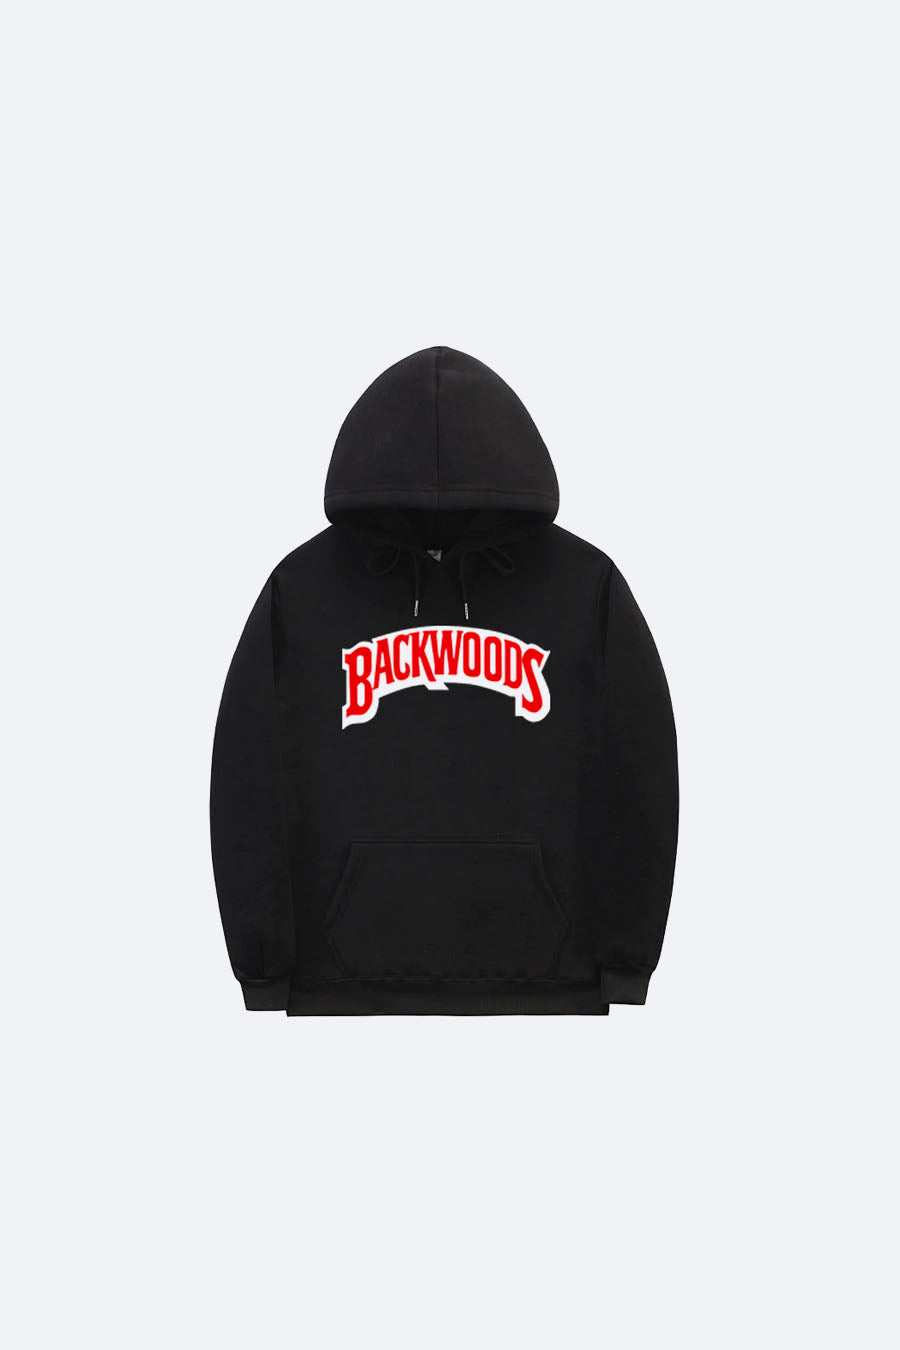 Backwoods Hoodie in 5 colors